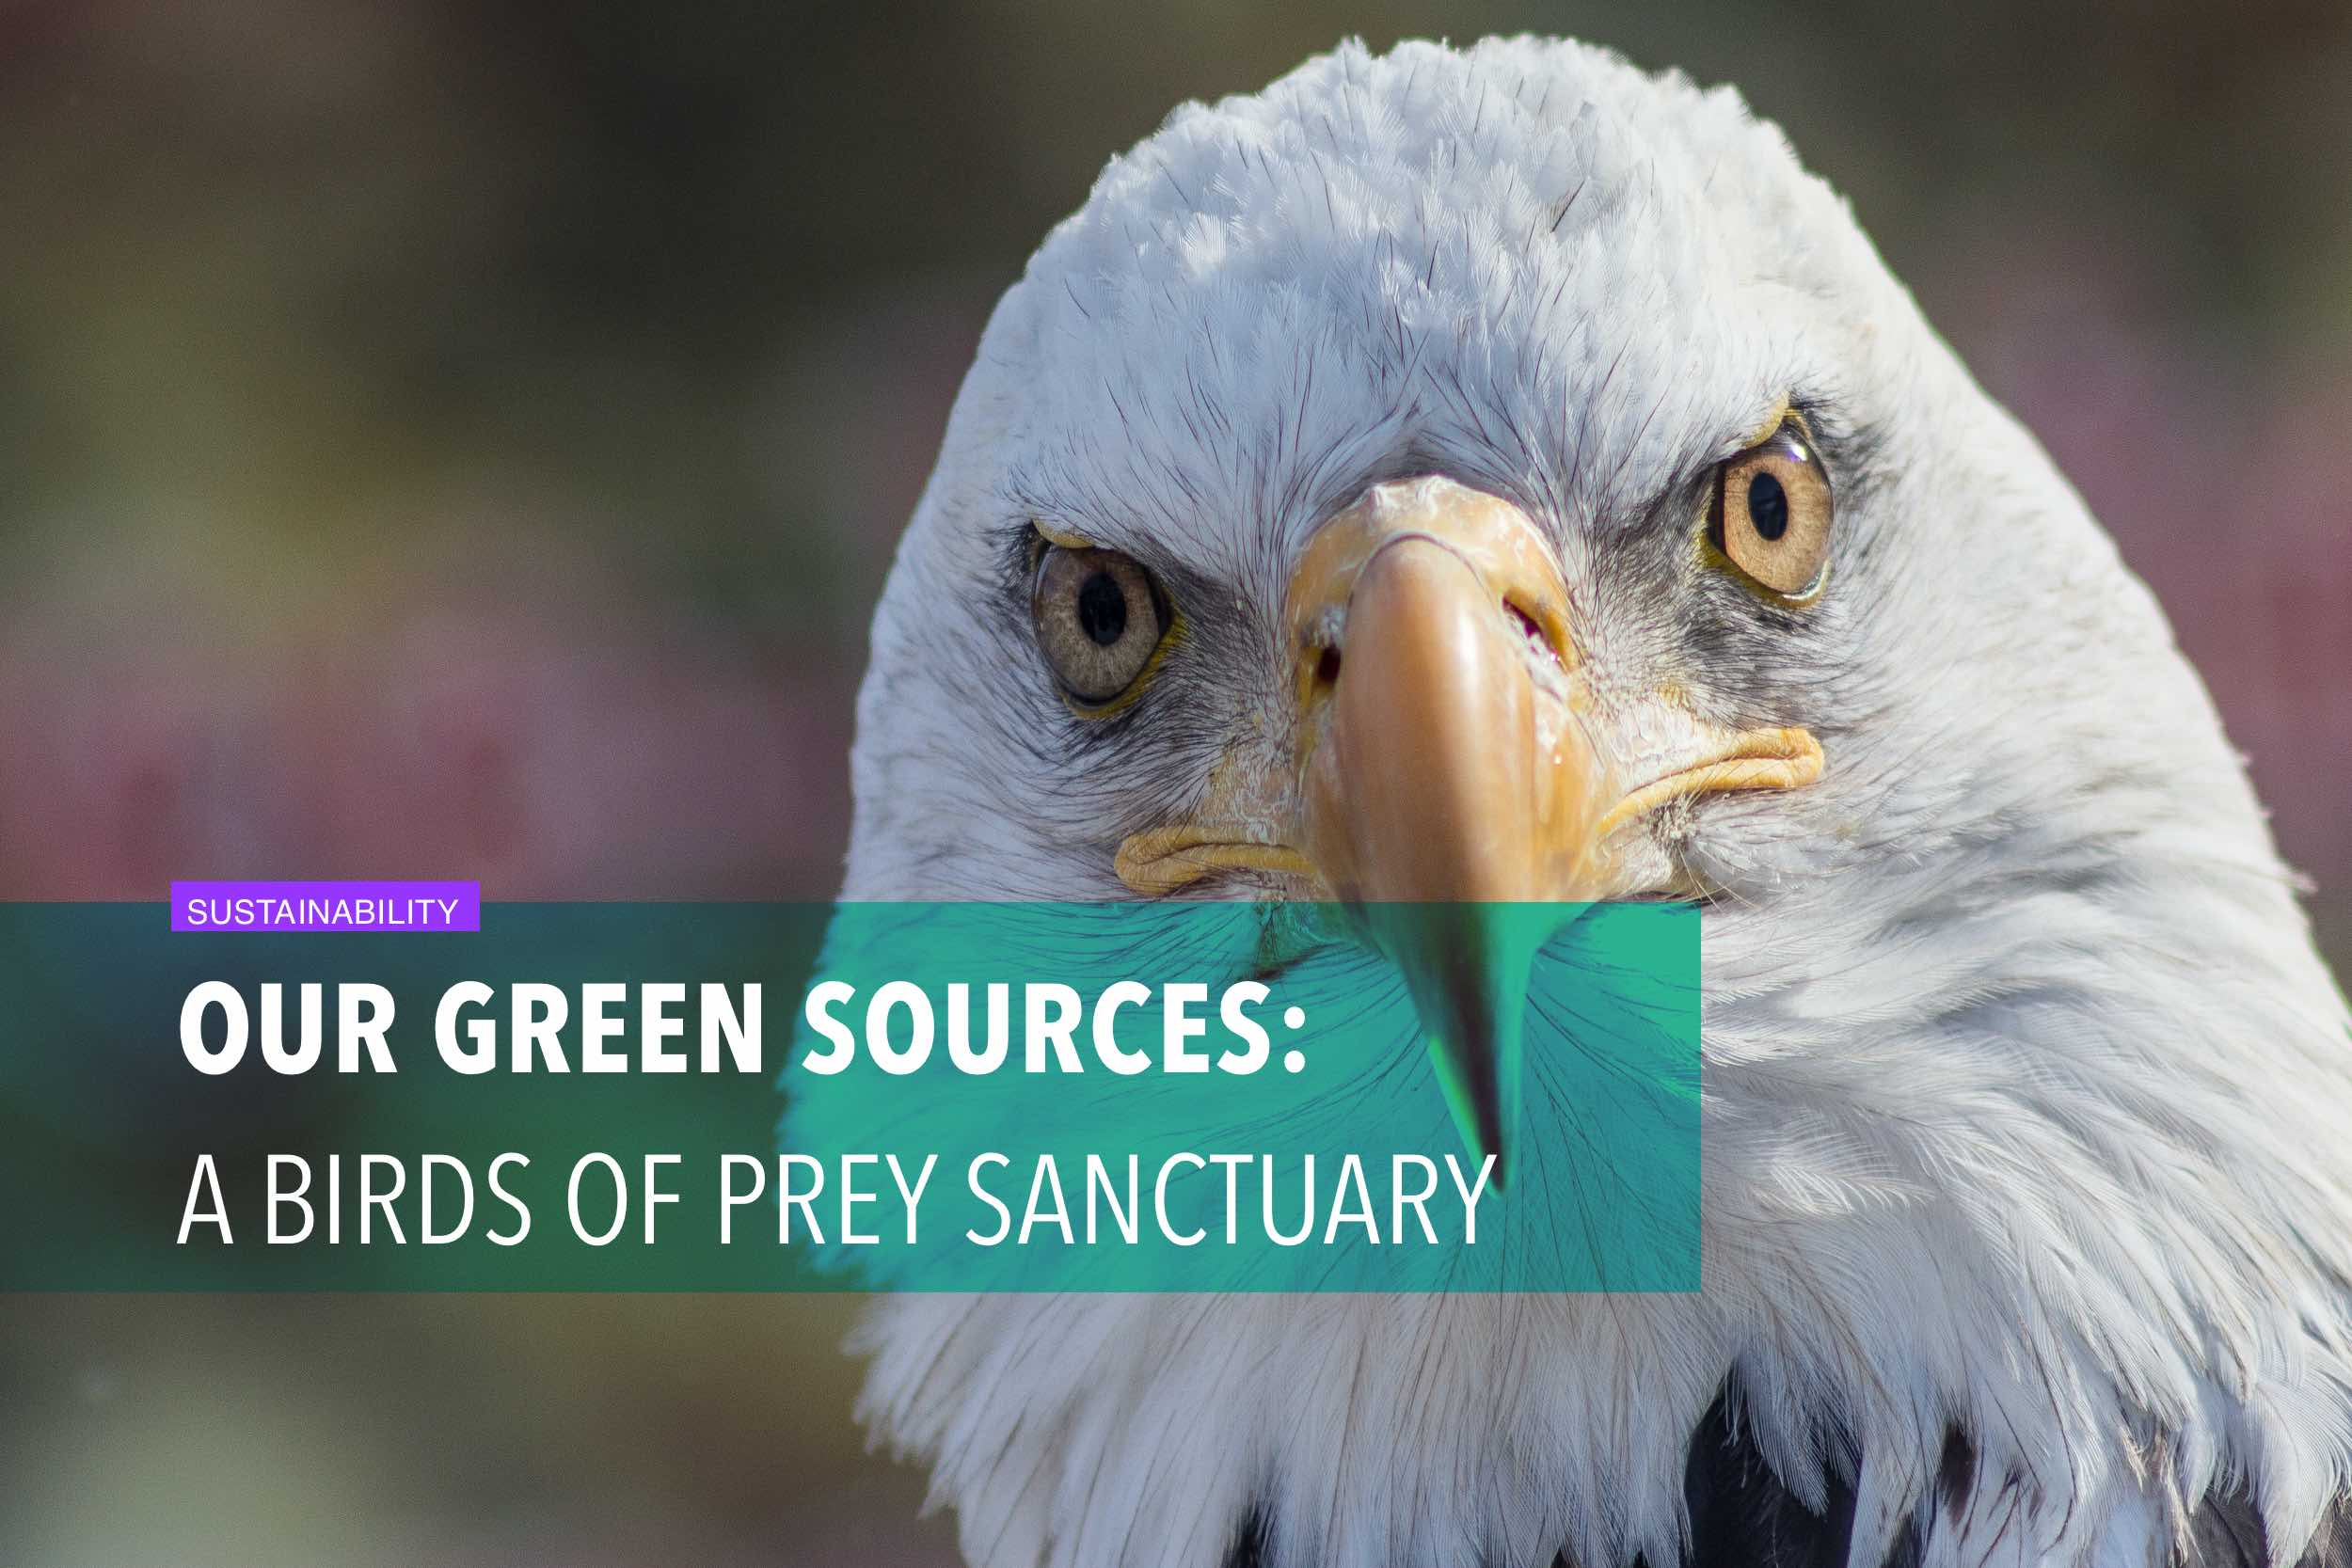 Our green sources: A birds of prey sanctuary